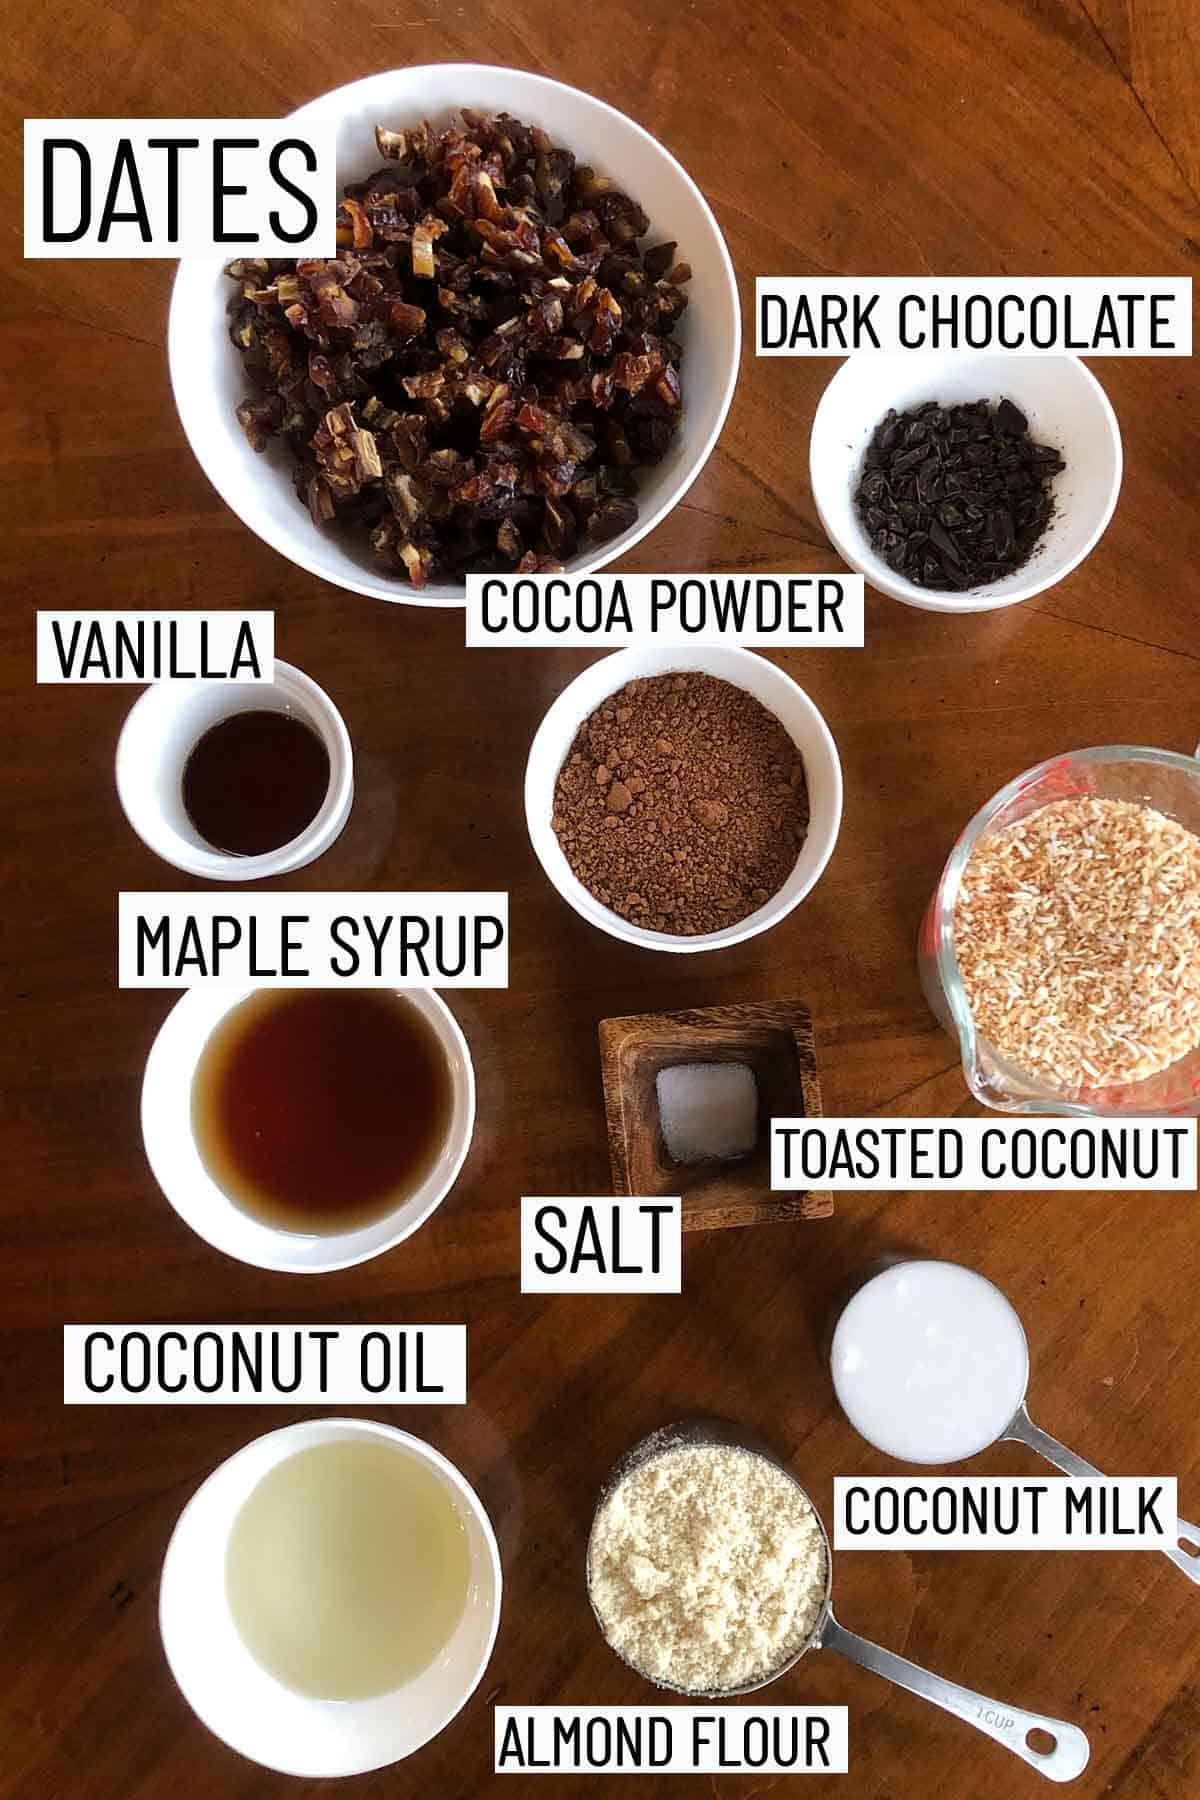 Flat lay of portioned recipe ingredients including almond flour, coconut milk, coconut oil, salt, maple syrup, toasted coconut, cacao powder, vanilla, chocolate, and dates.